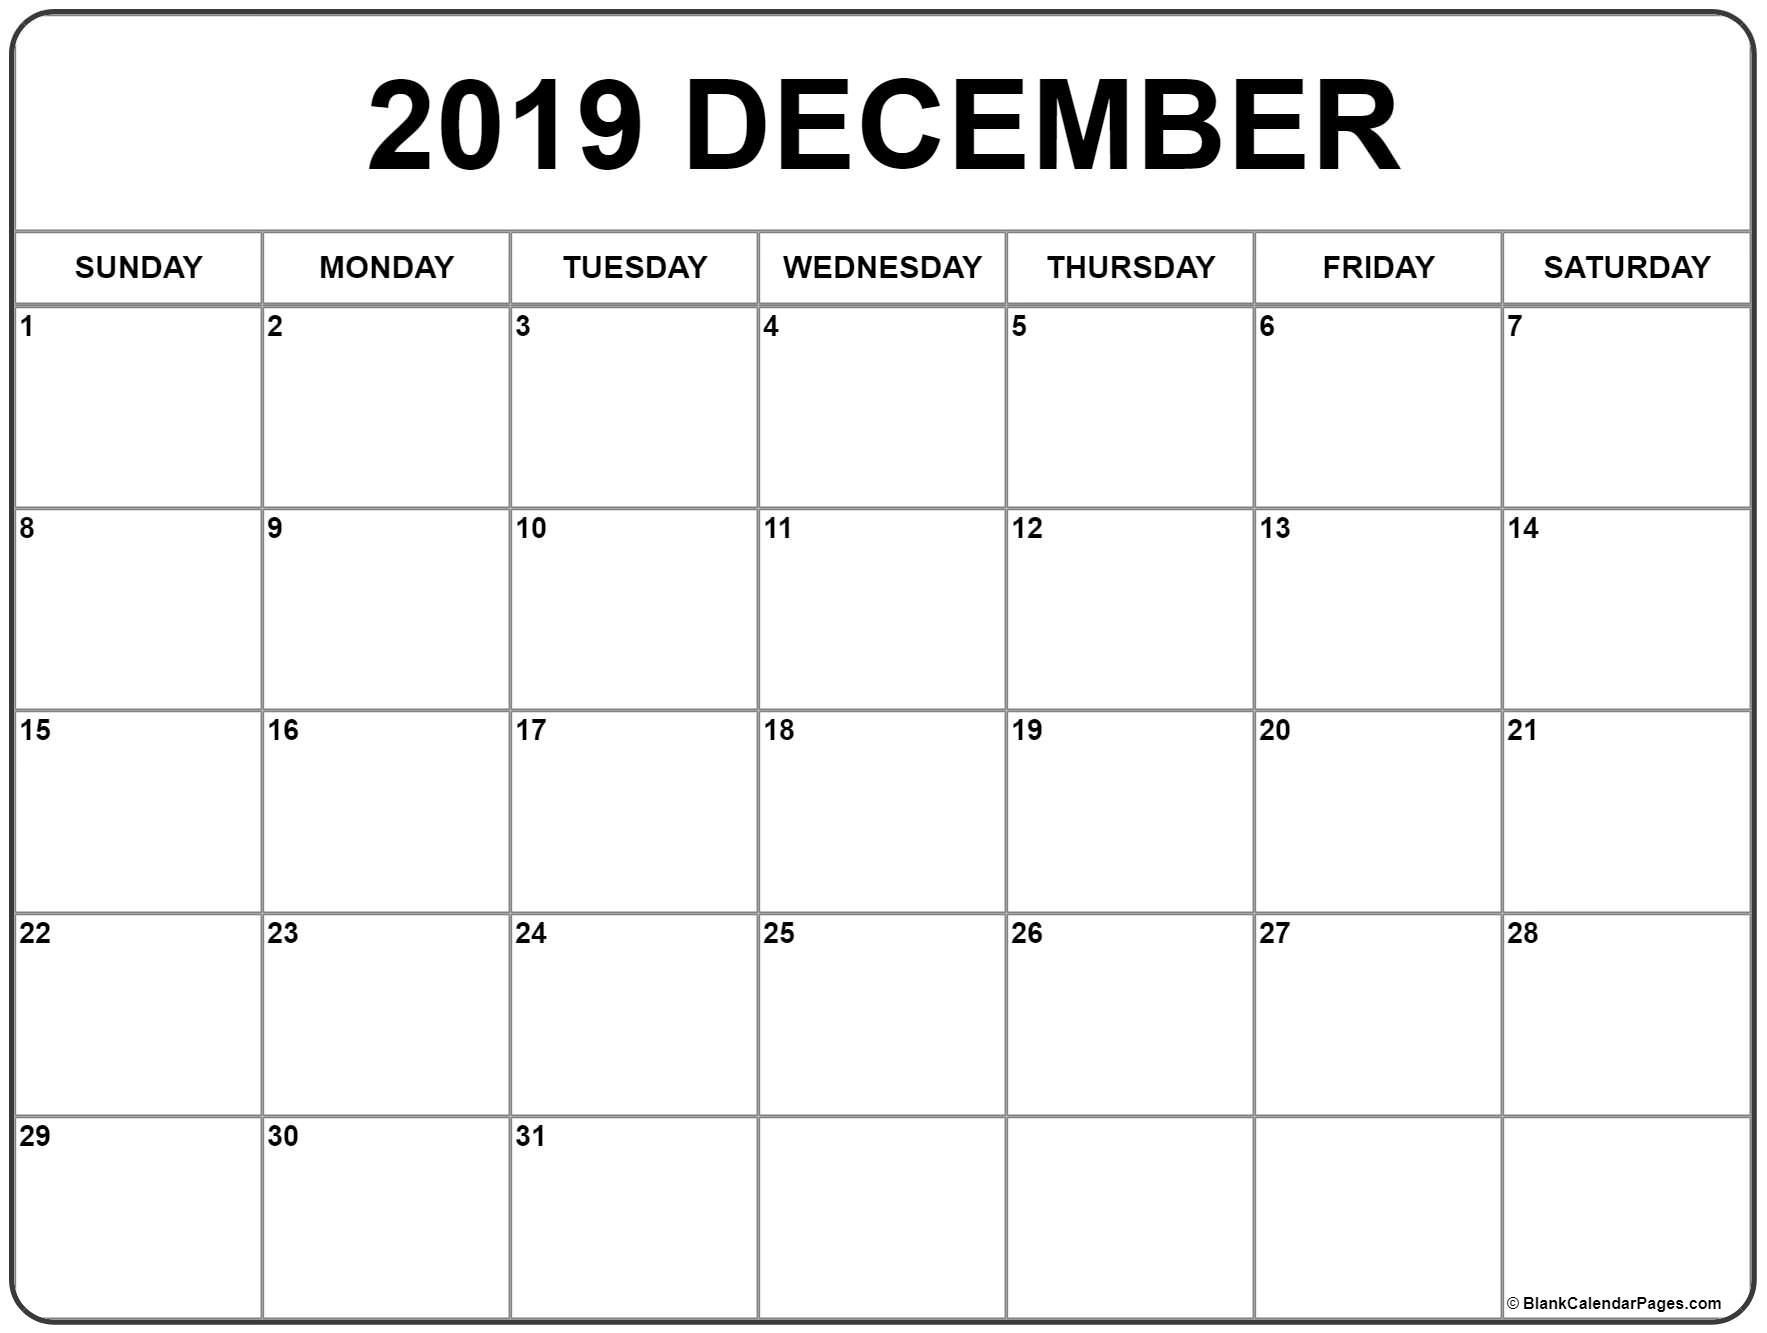 2019 Free Printable Calendars Without Downloading In 2020 intended for Print Free Calendars Without Downloading 2020